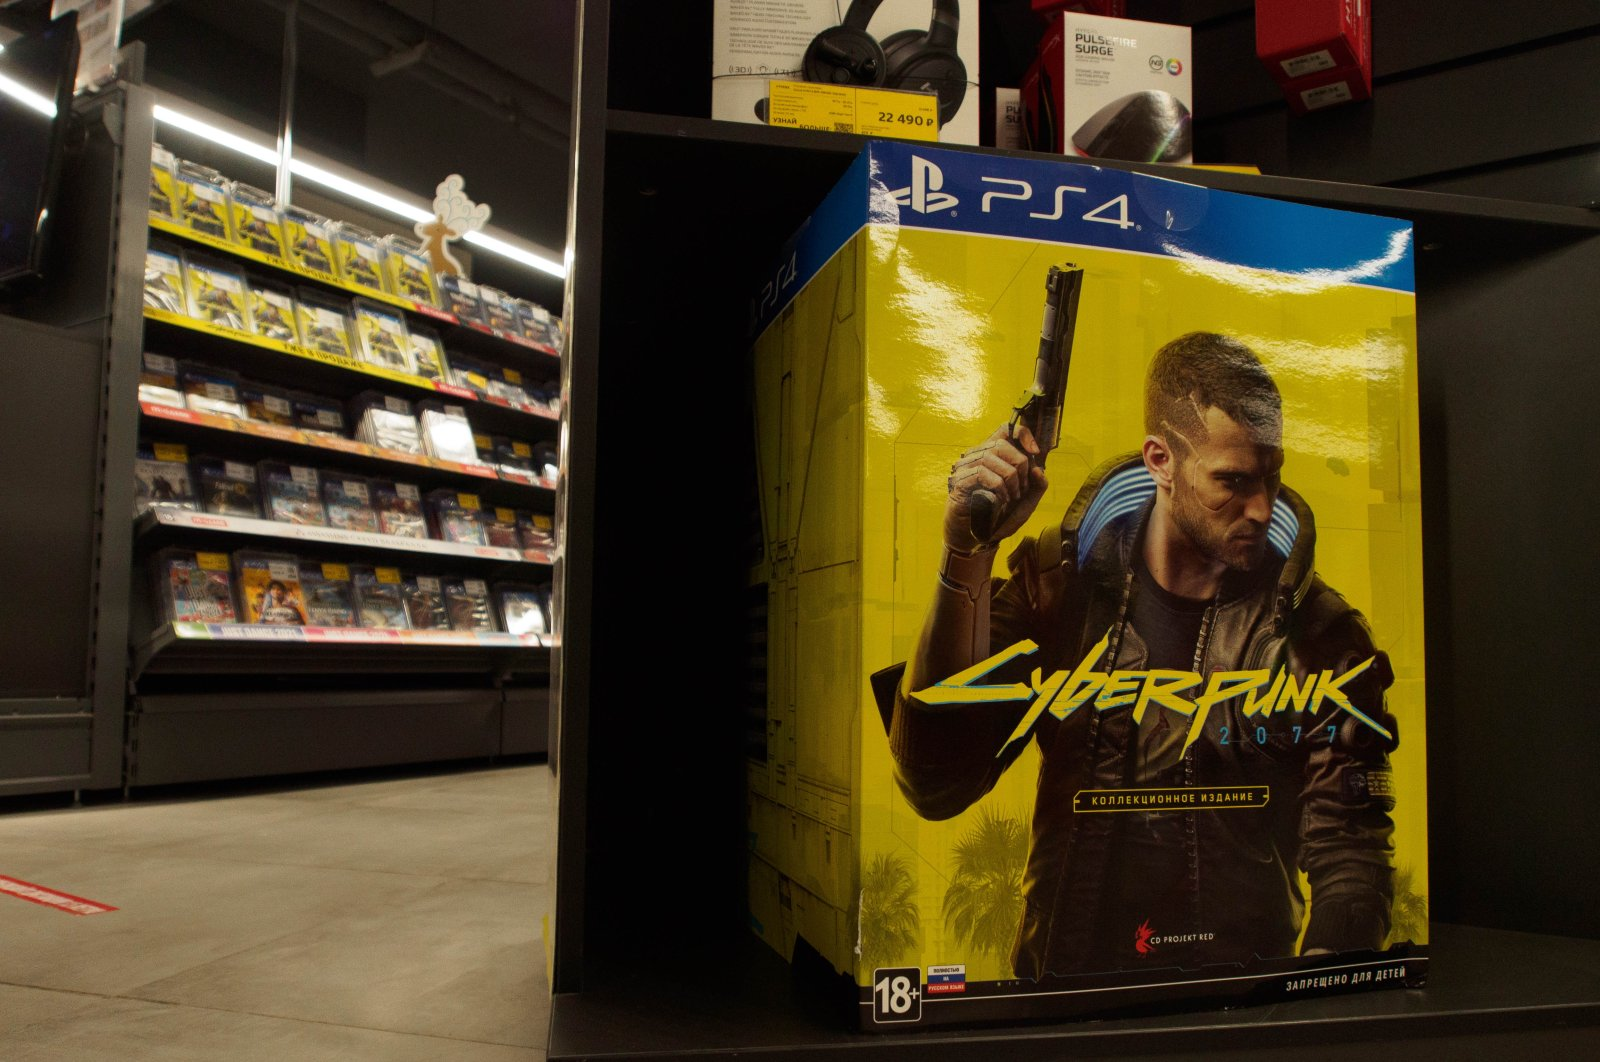 A box with the Sony PlayStation 4 Cyberpunk 2077 Collector's Edition is seen displayed at a store in Russia. (Reuters Photo)